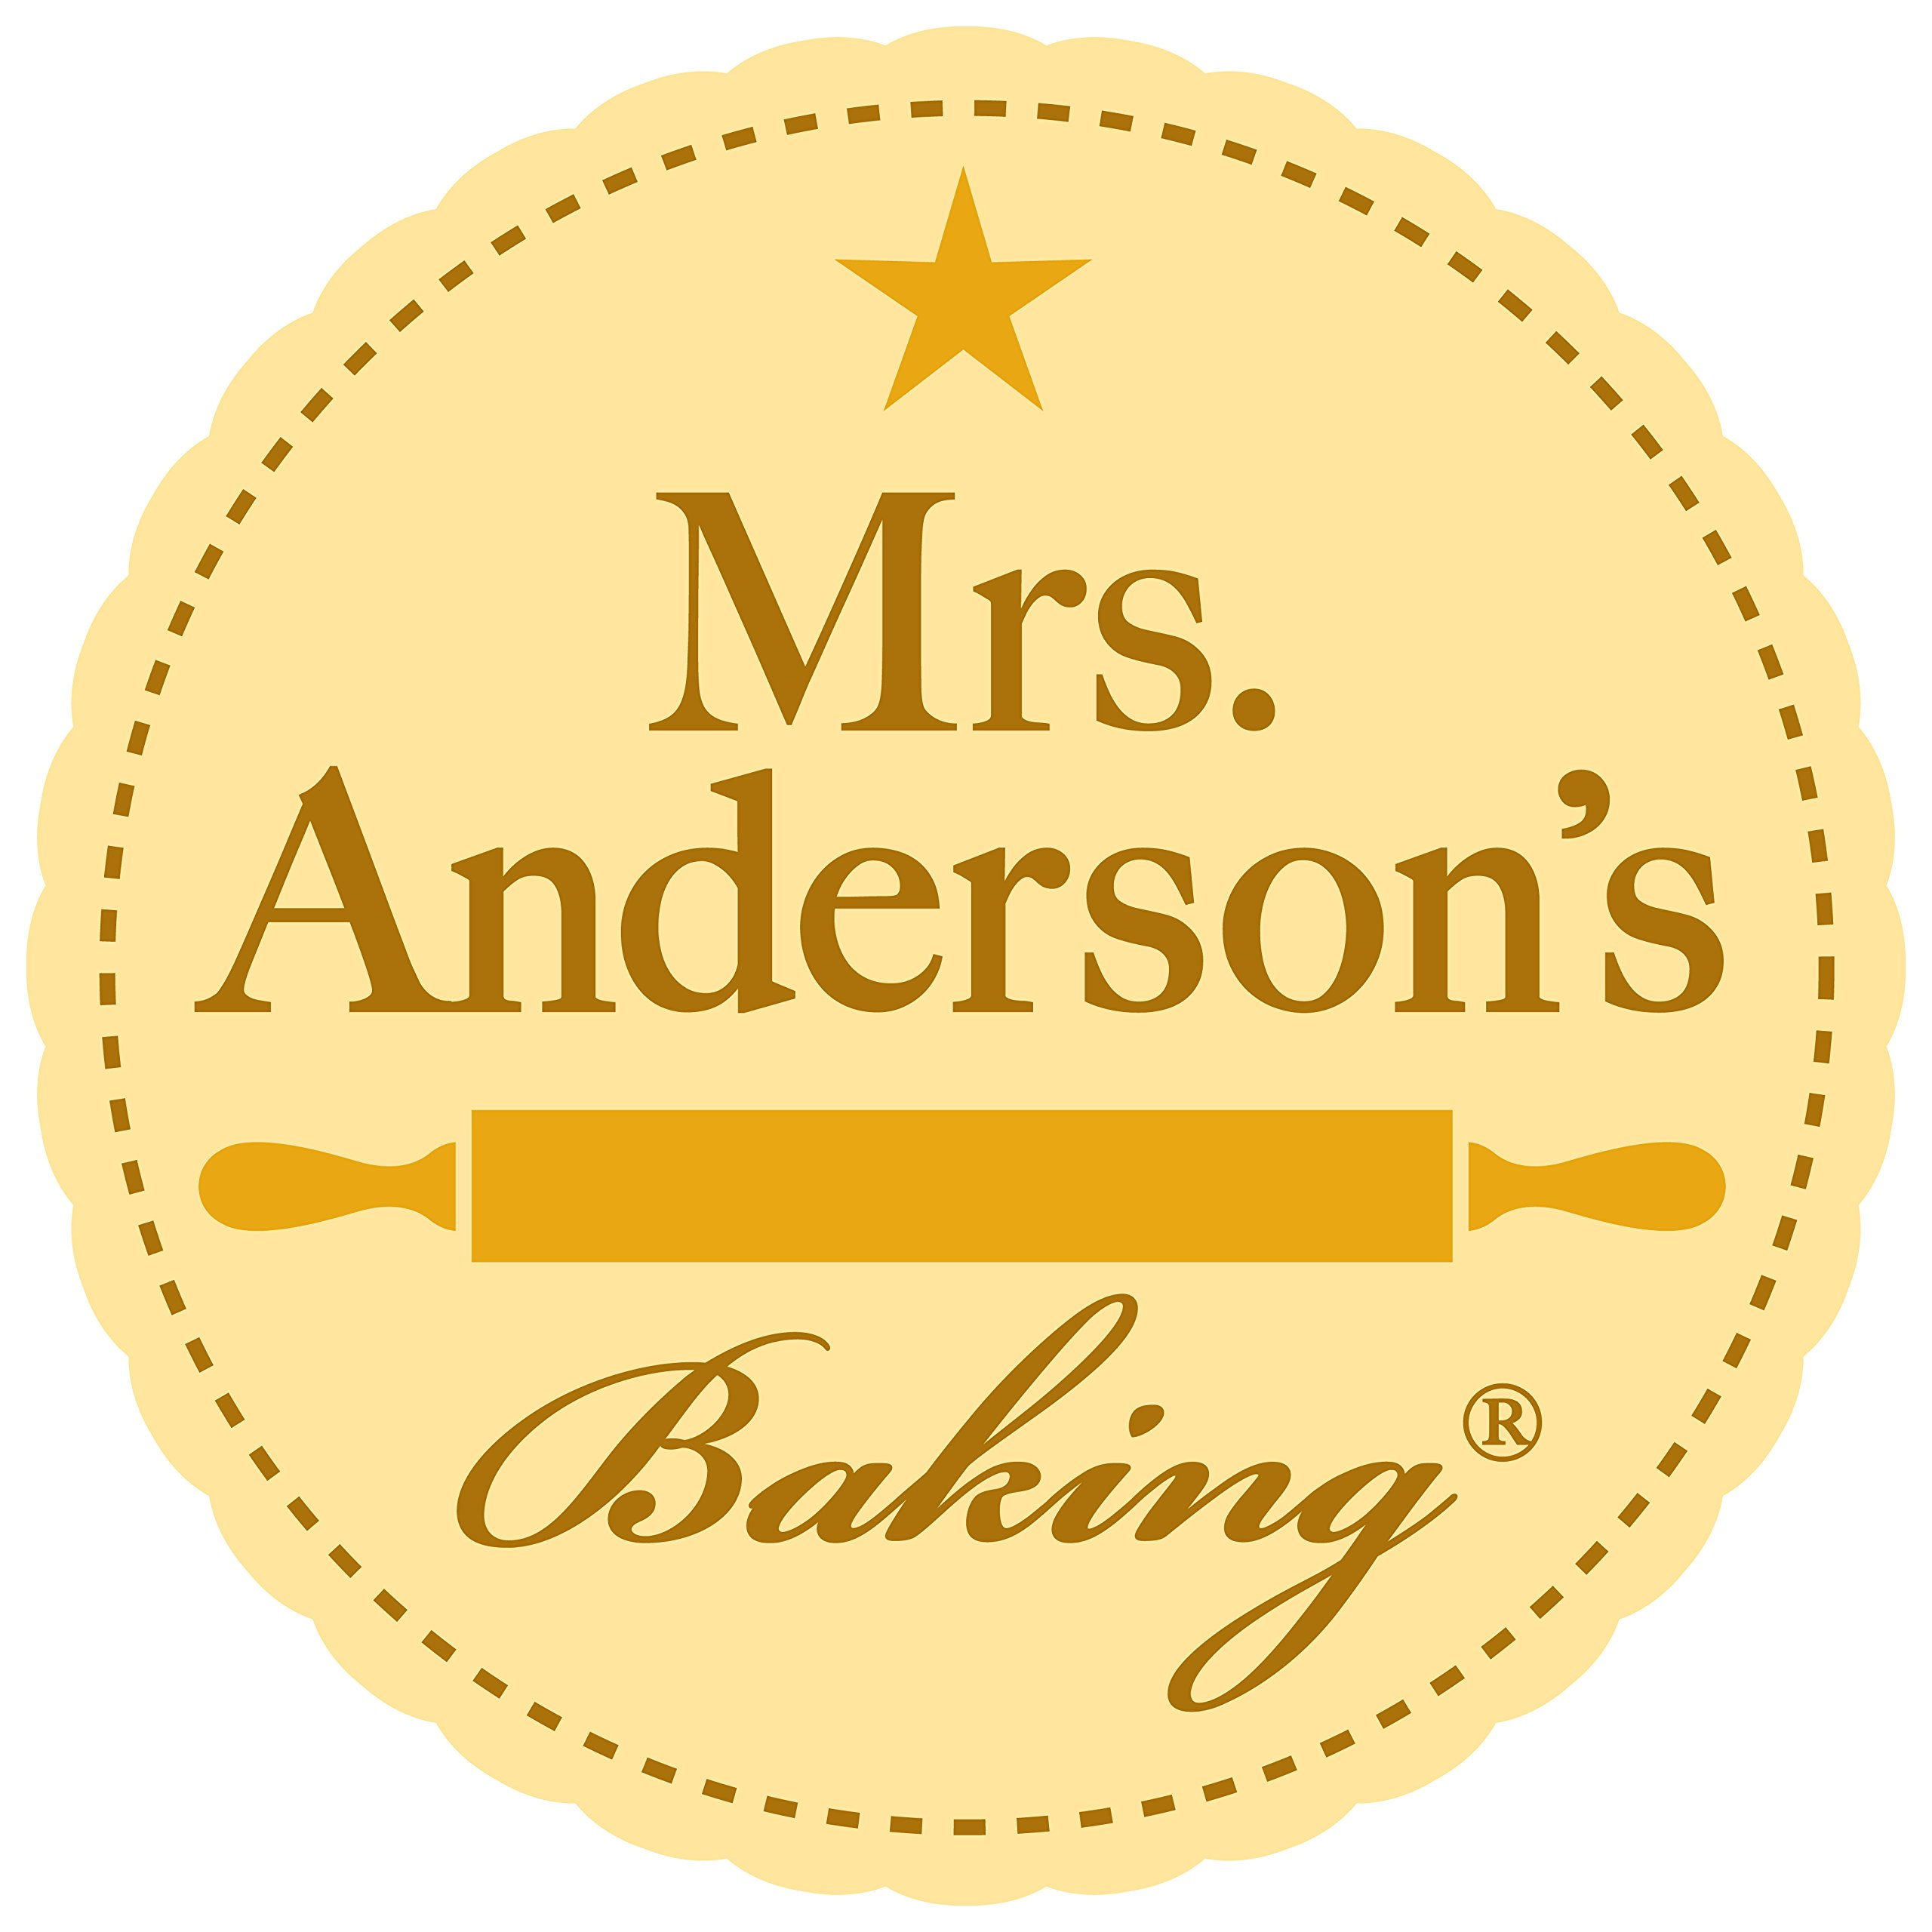 Mrs. Anderson's Baking Non-Stick Silicone Half-Size Baking Mat, 11.625-Inch x 16.5-Inch, Set of 2 by Mrs. Anderson's Baking (Image #8)